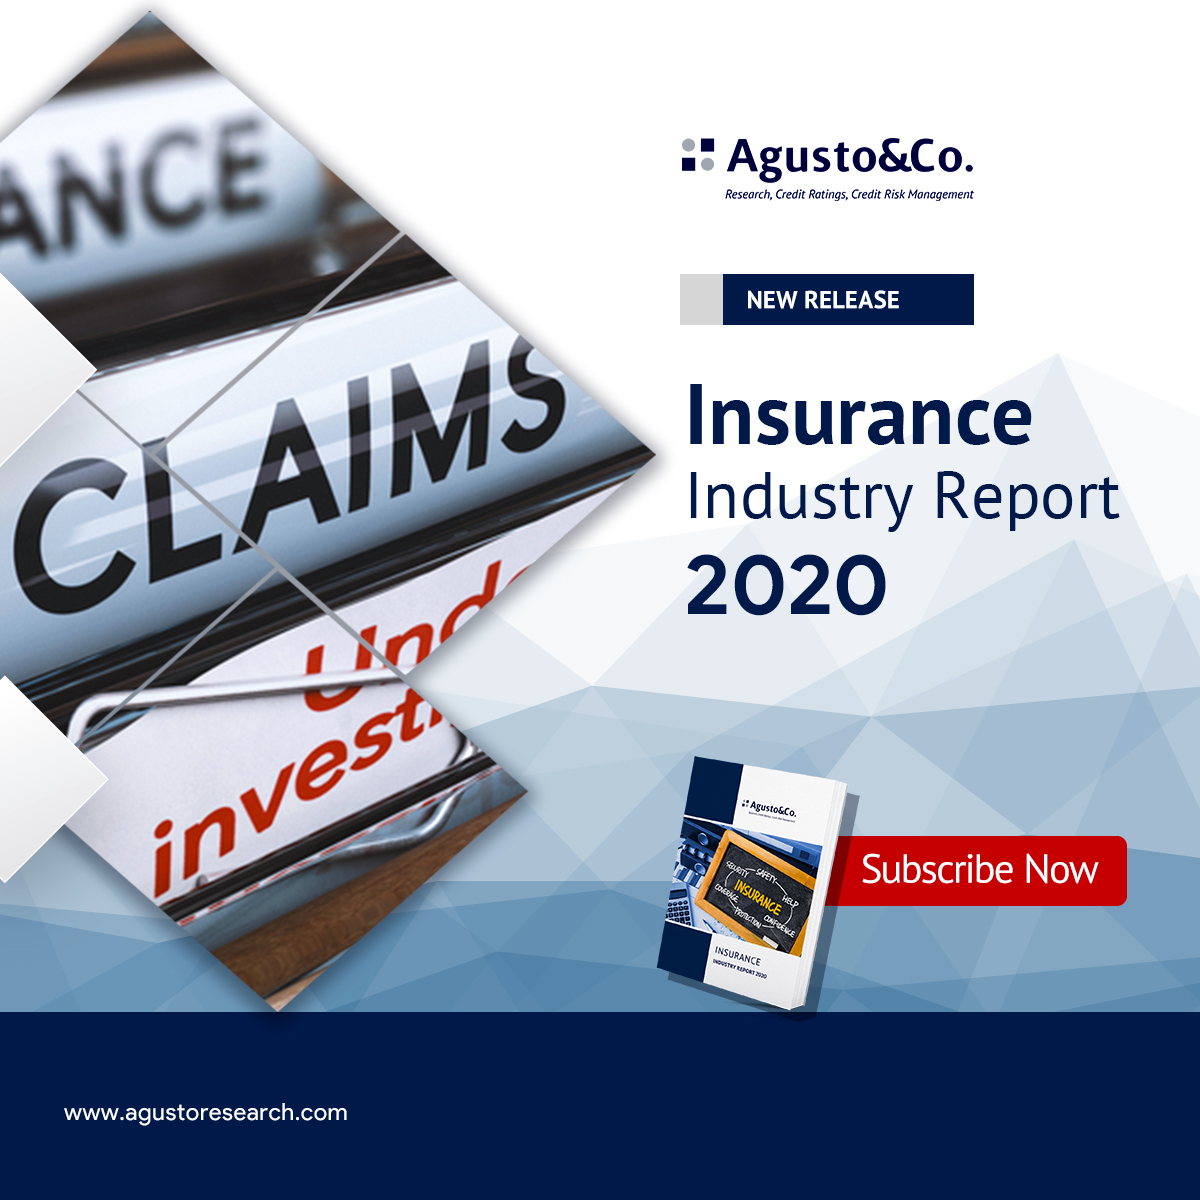 2020 Insurance Industry Report